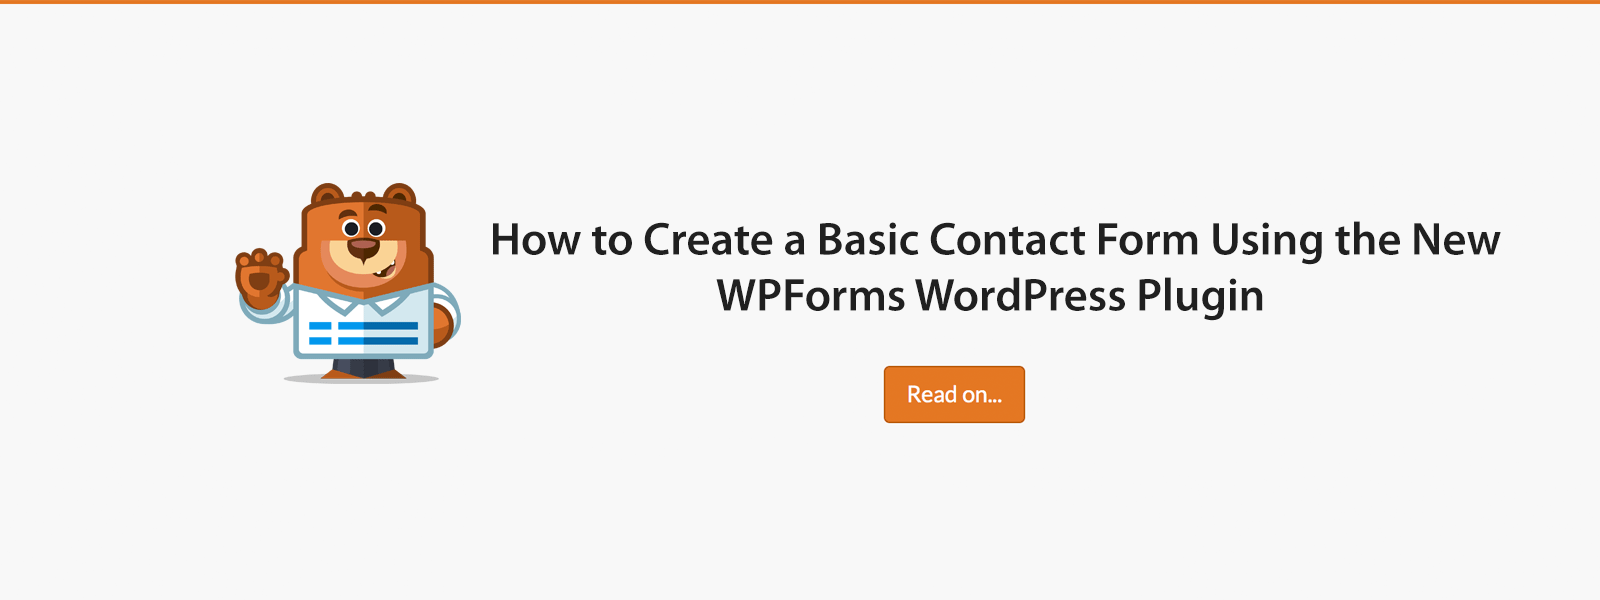 How to Create a Basic Contact Form Using the New WPForms WordPress Plugin